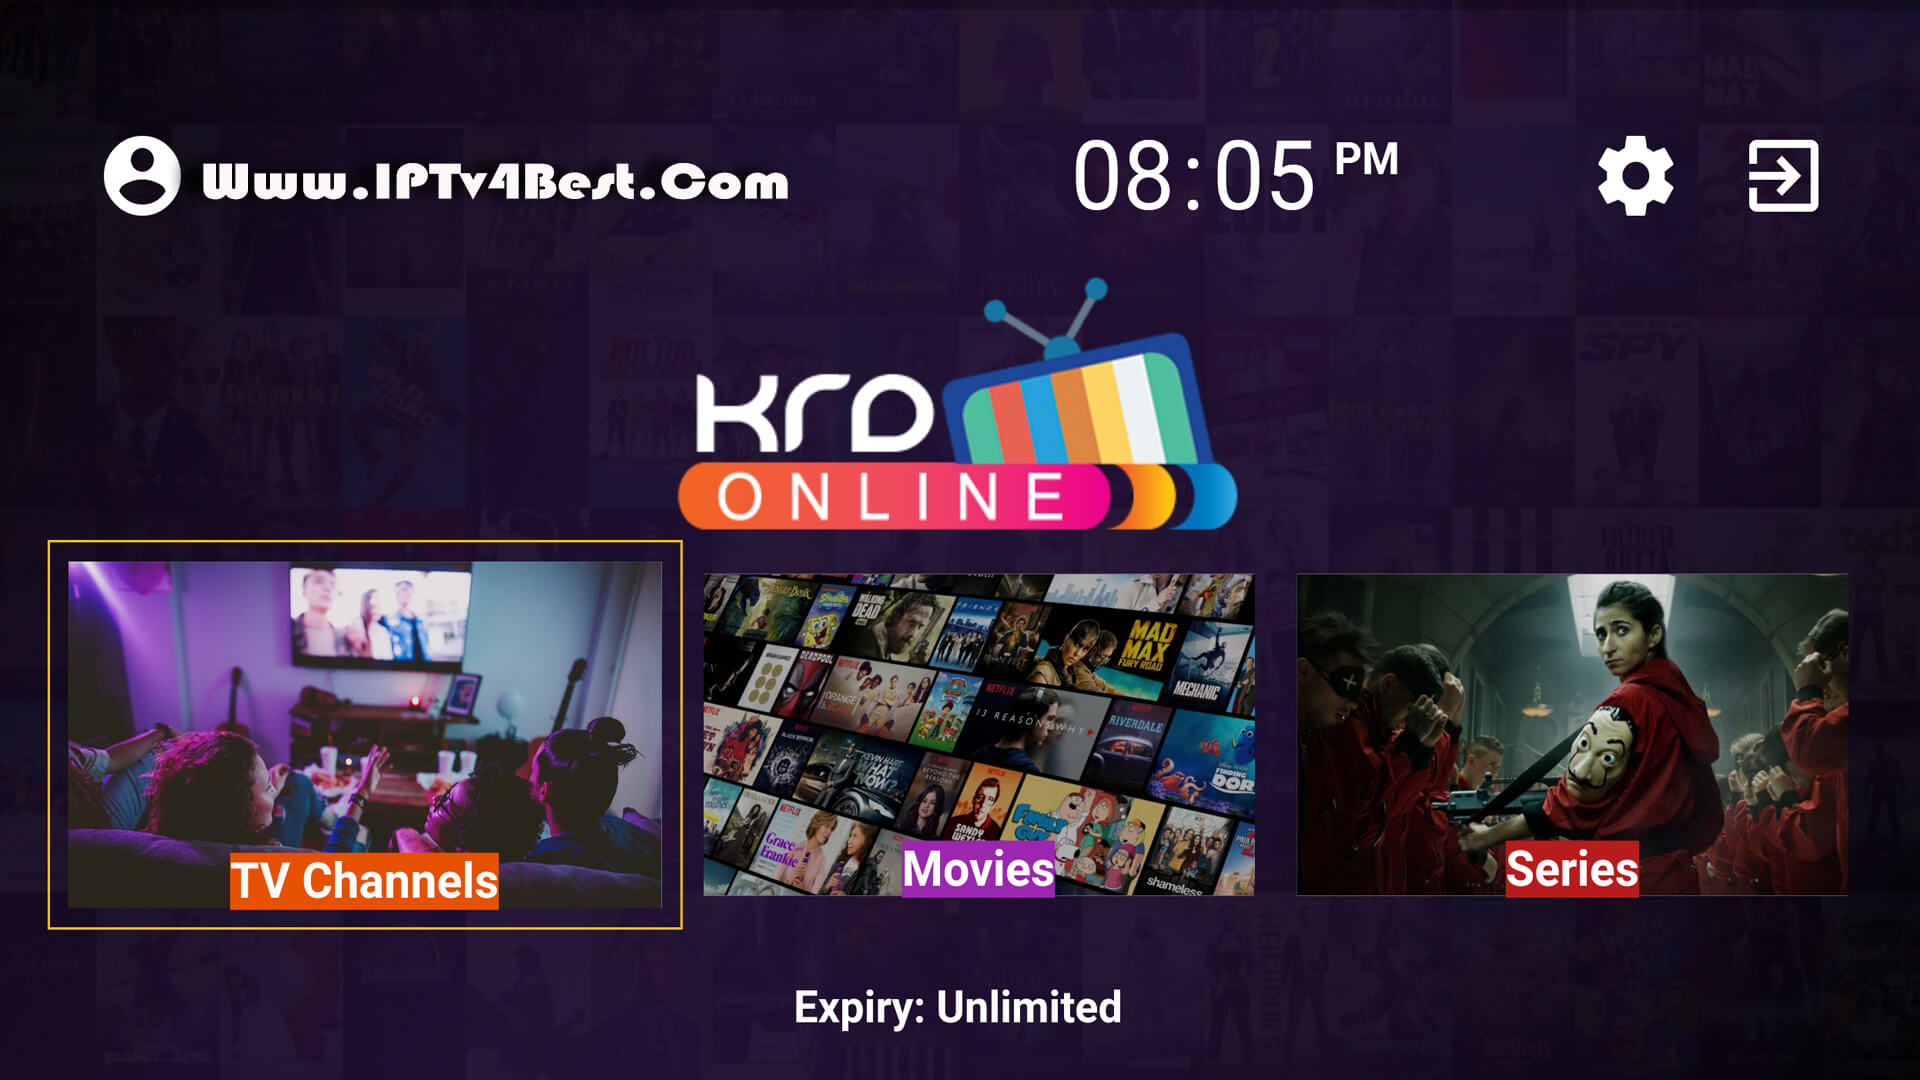 KRD Online Tv APK + Activation Code Unlimited By IPTV4BEST.COM